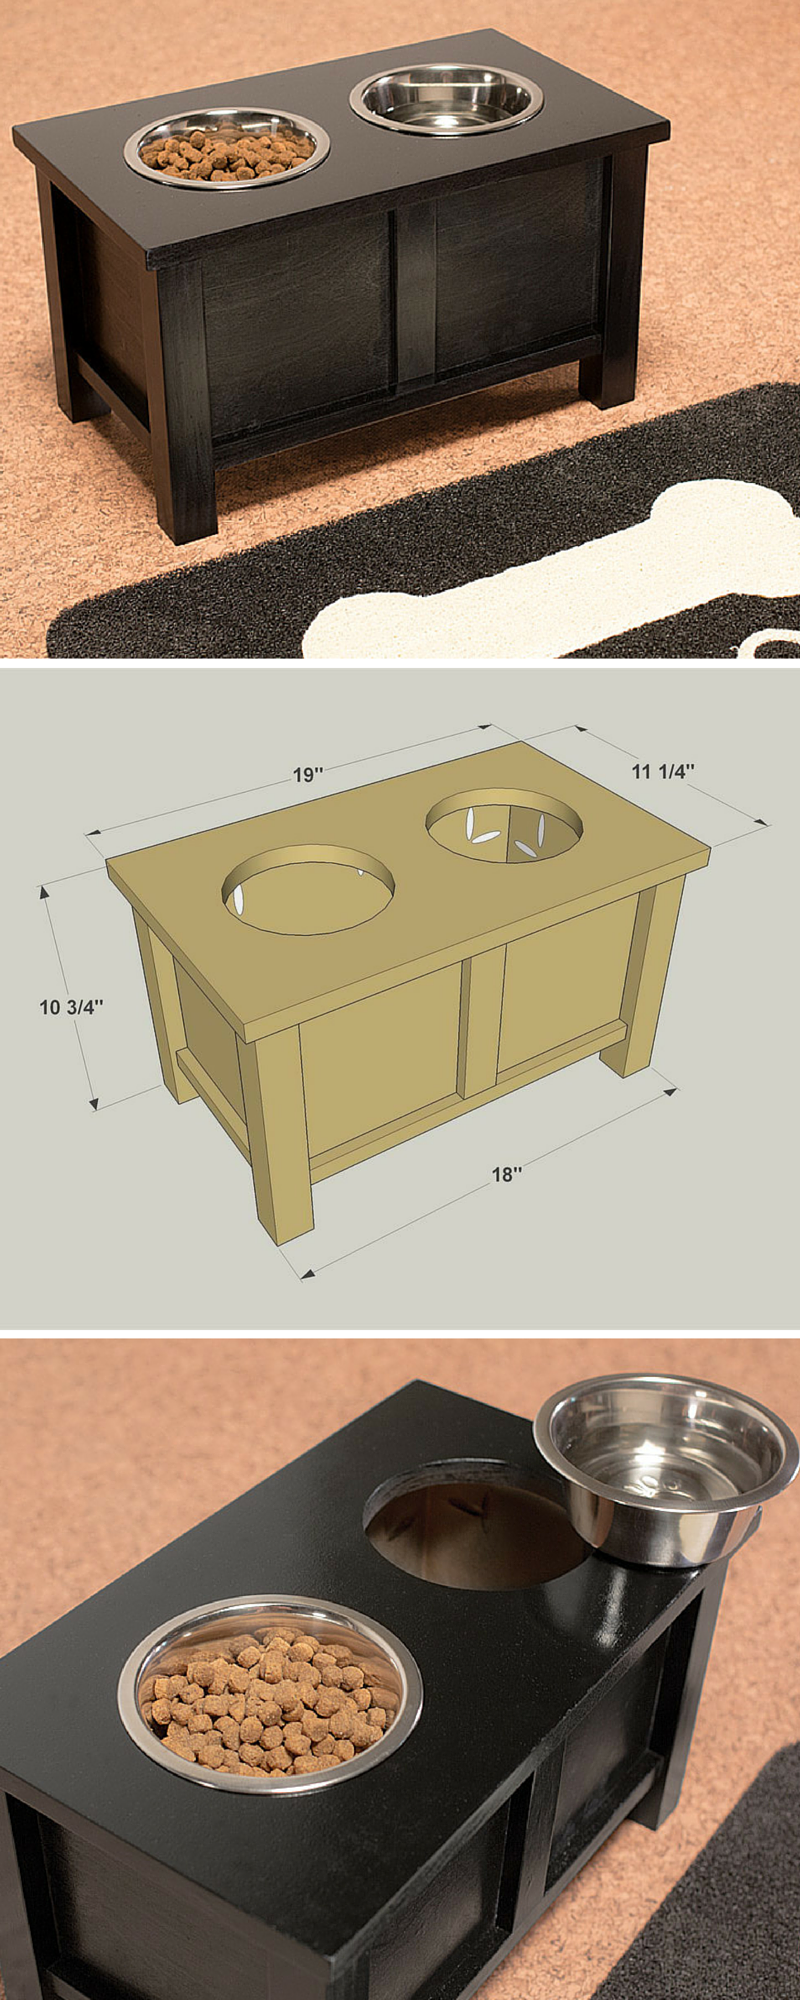 medium resolution of how to build a diy raised dog bowl stand free printable project plans at buildsomething com elevate your dog s dining experience with a raised stand for